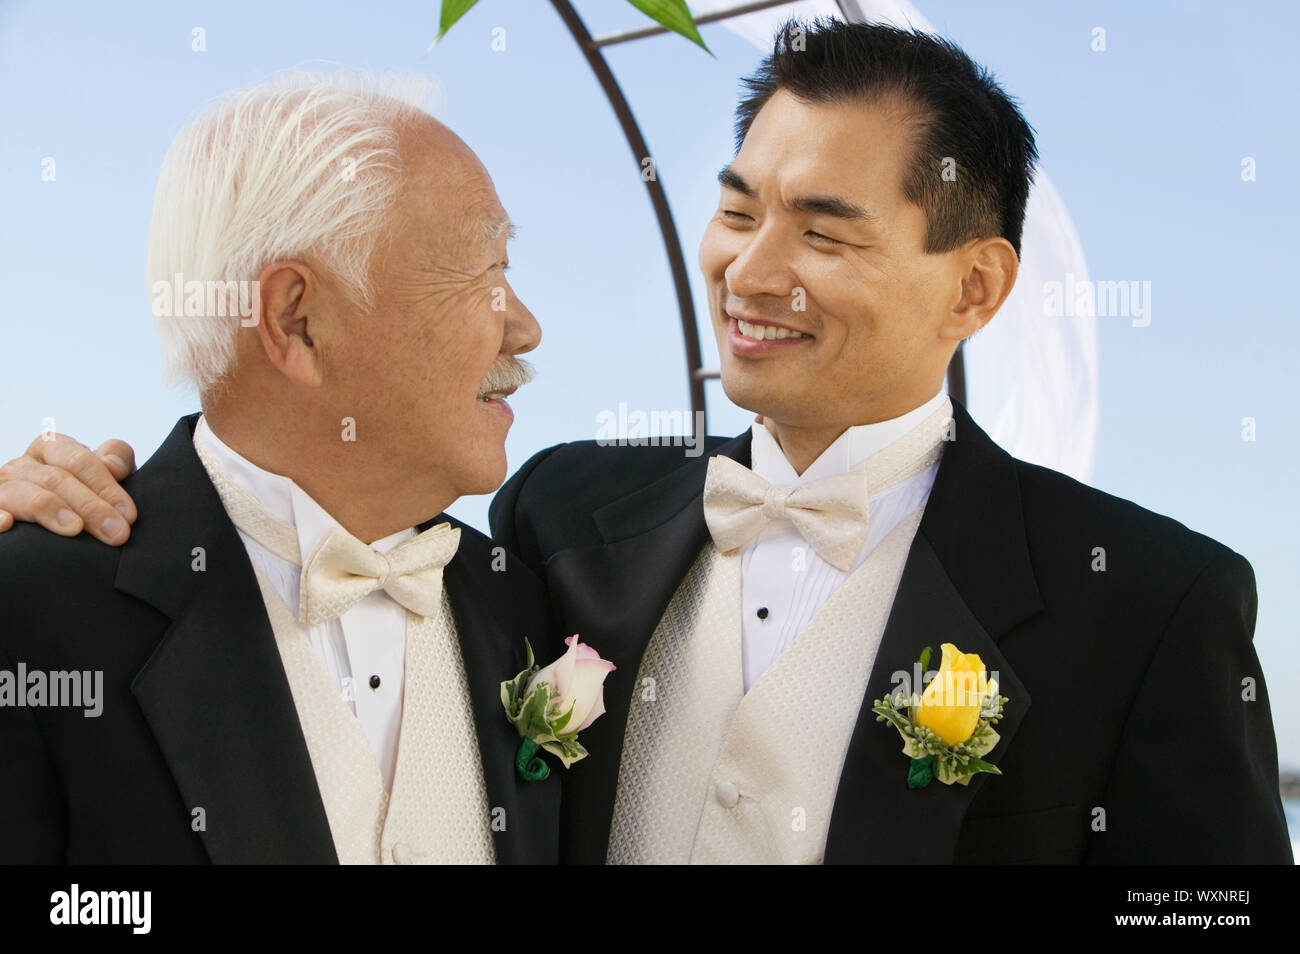 Groom With Arm Around Father Stock Photo